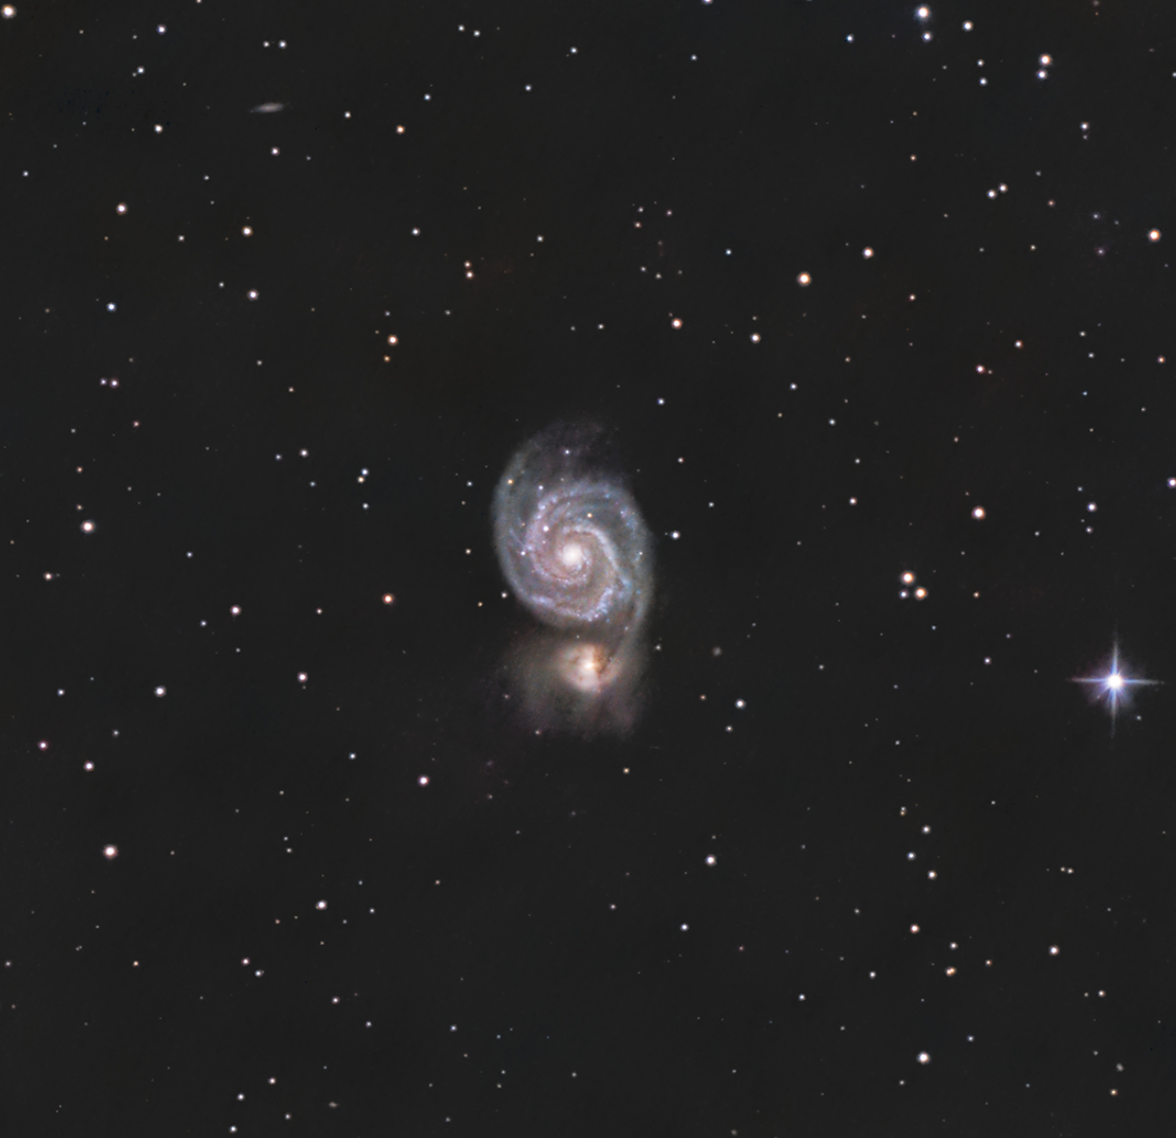 Whirlpool Galaxy, photo taken by Ethan Catalanello